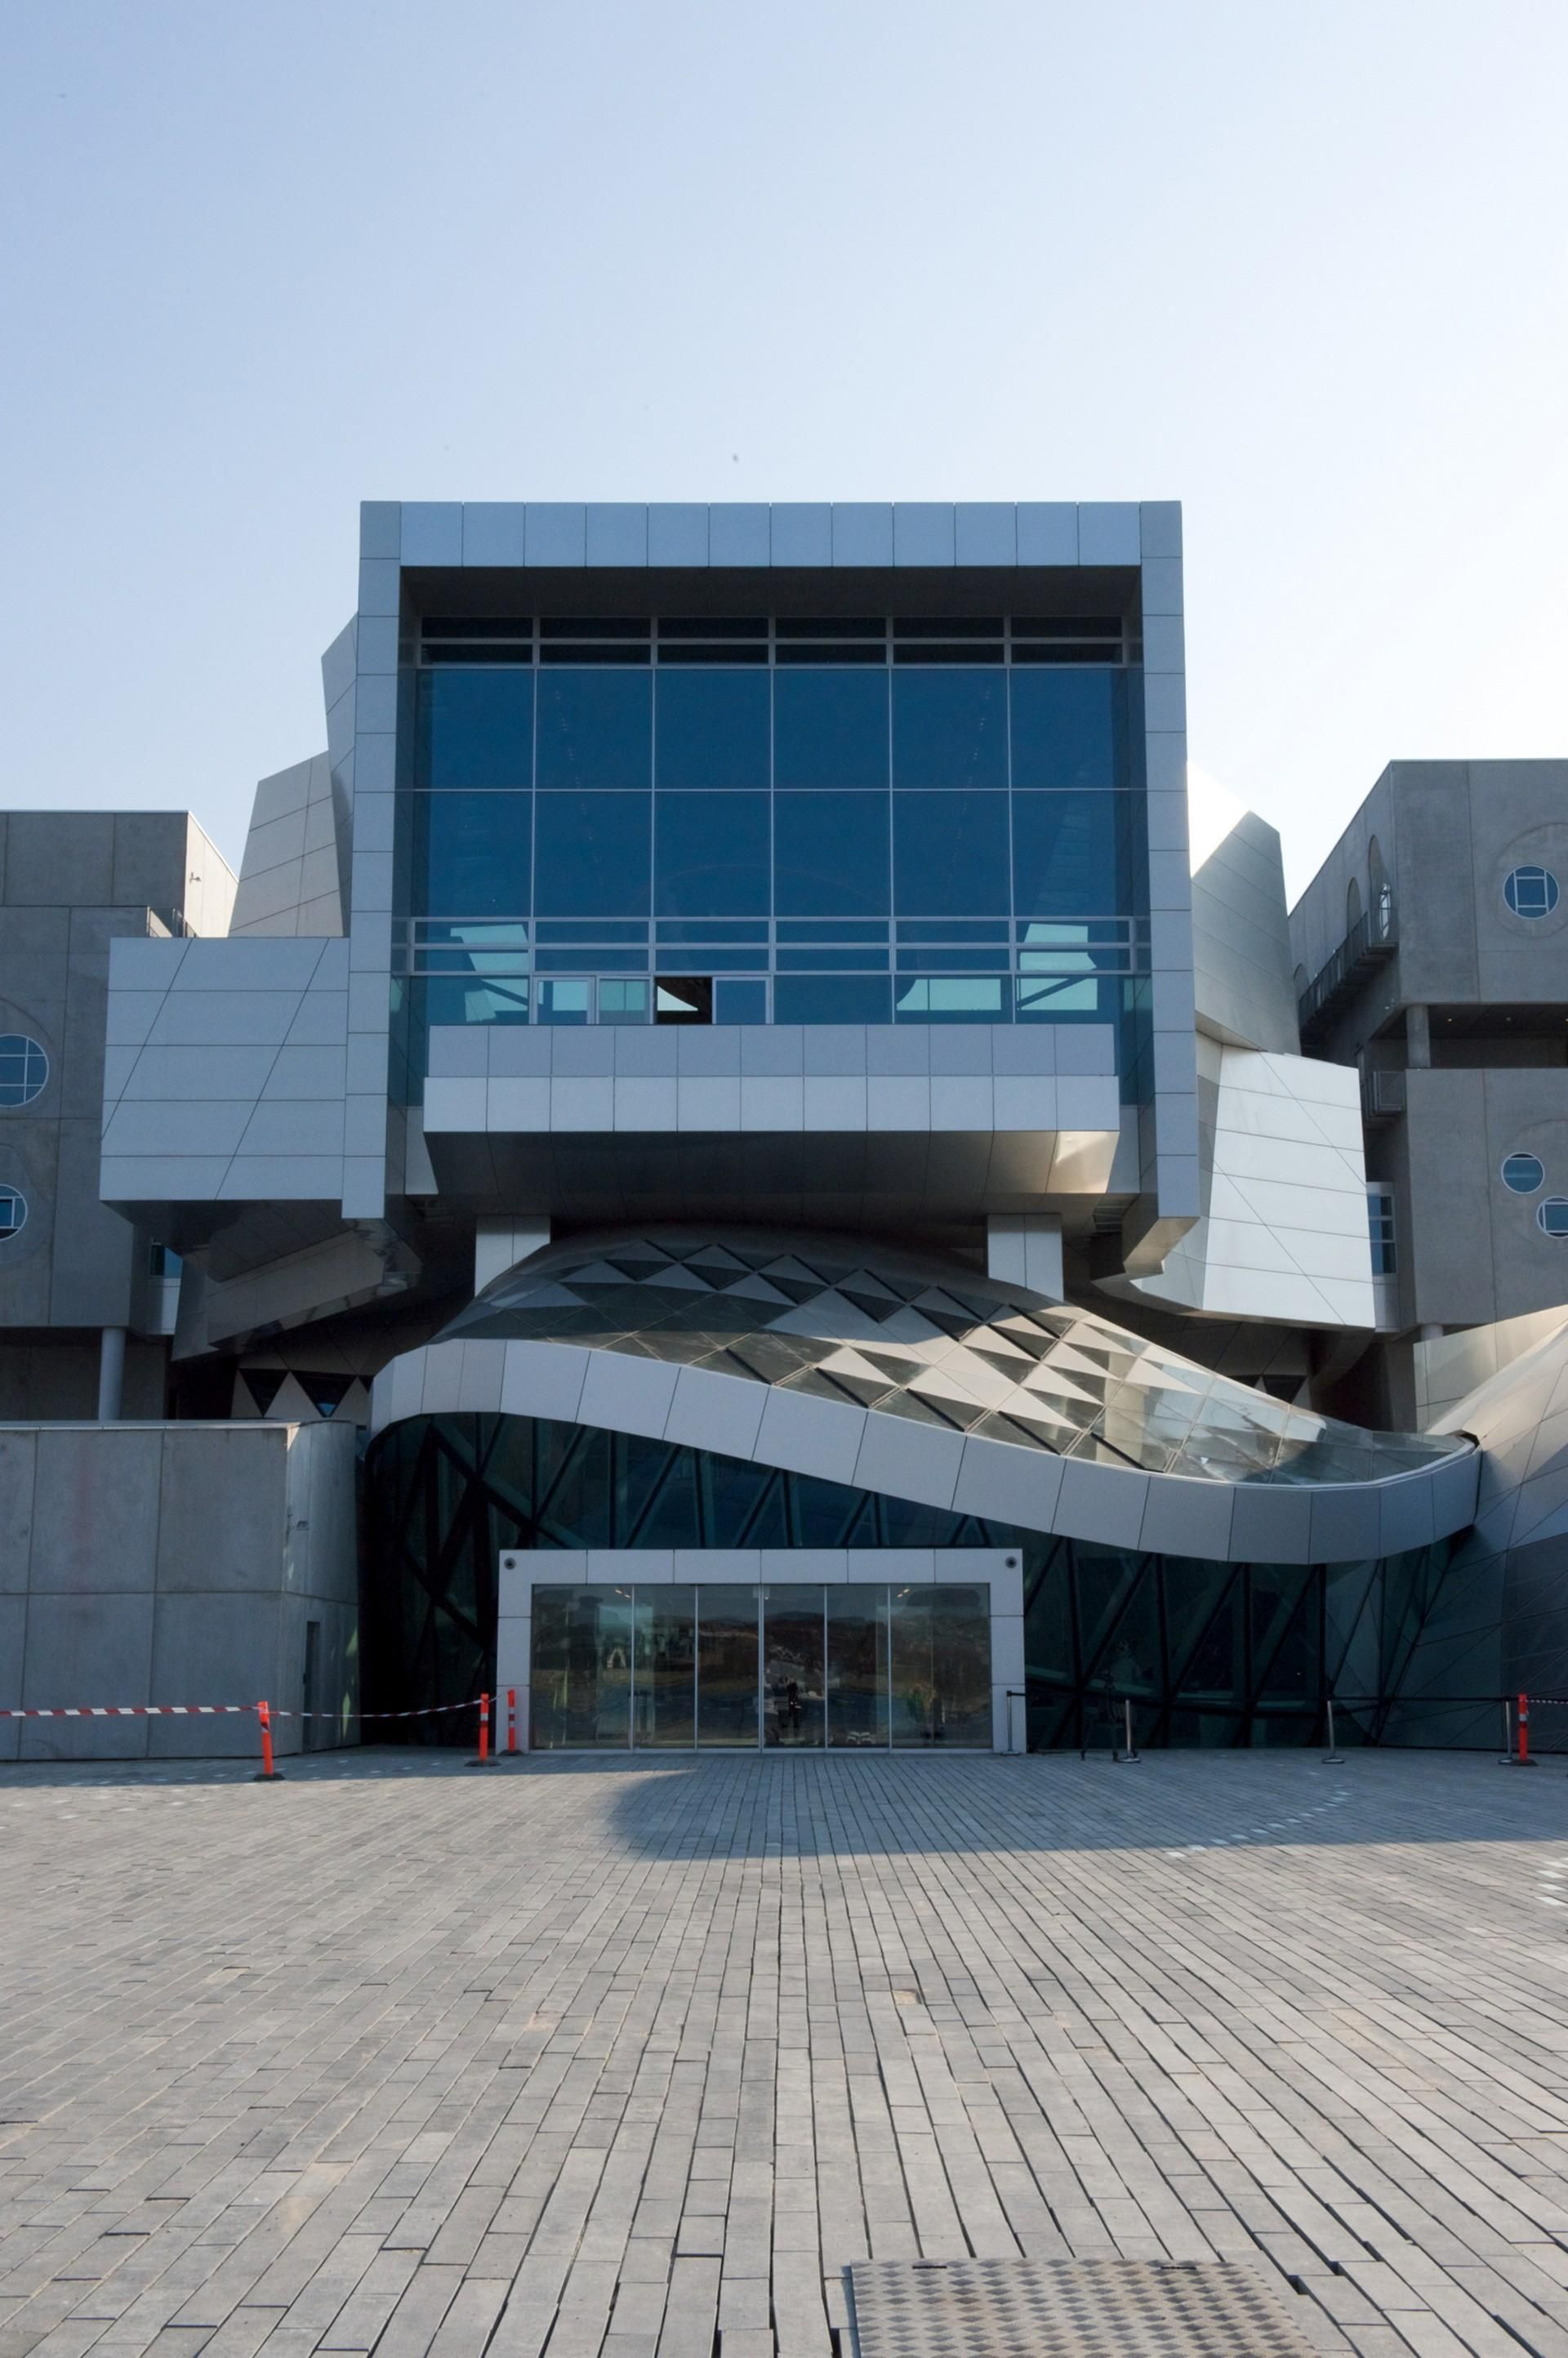 The House of Music in Aalborg Denmark was designed by the